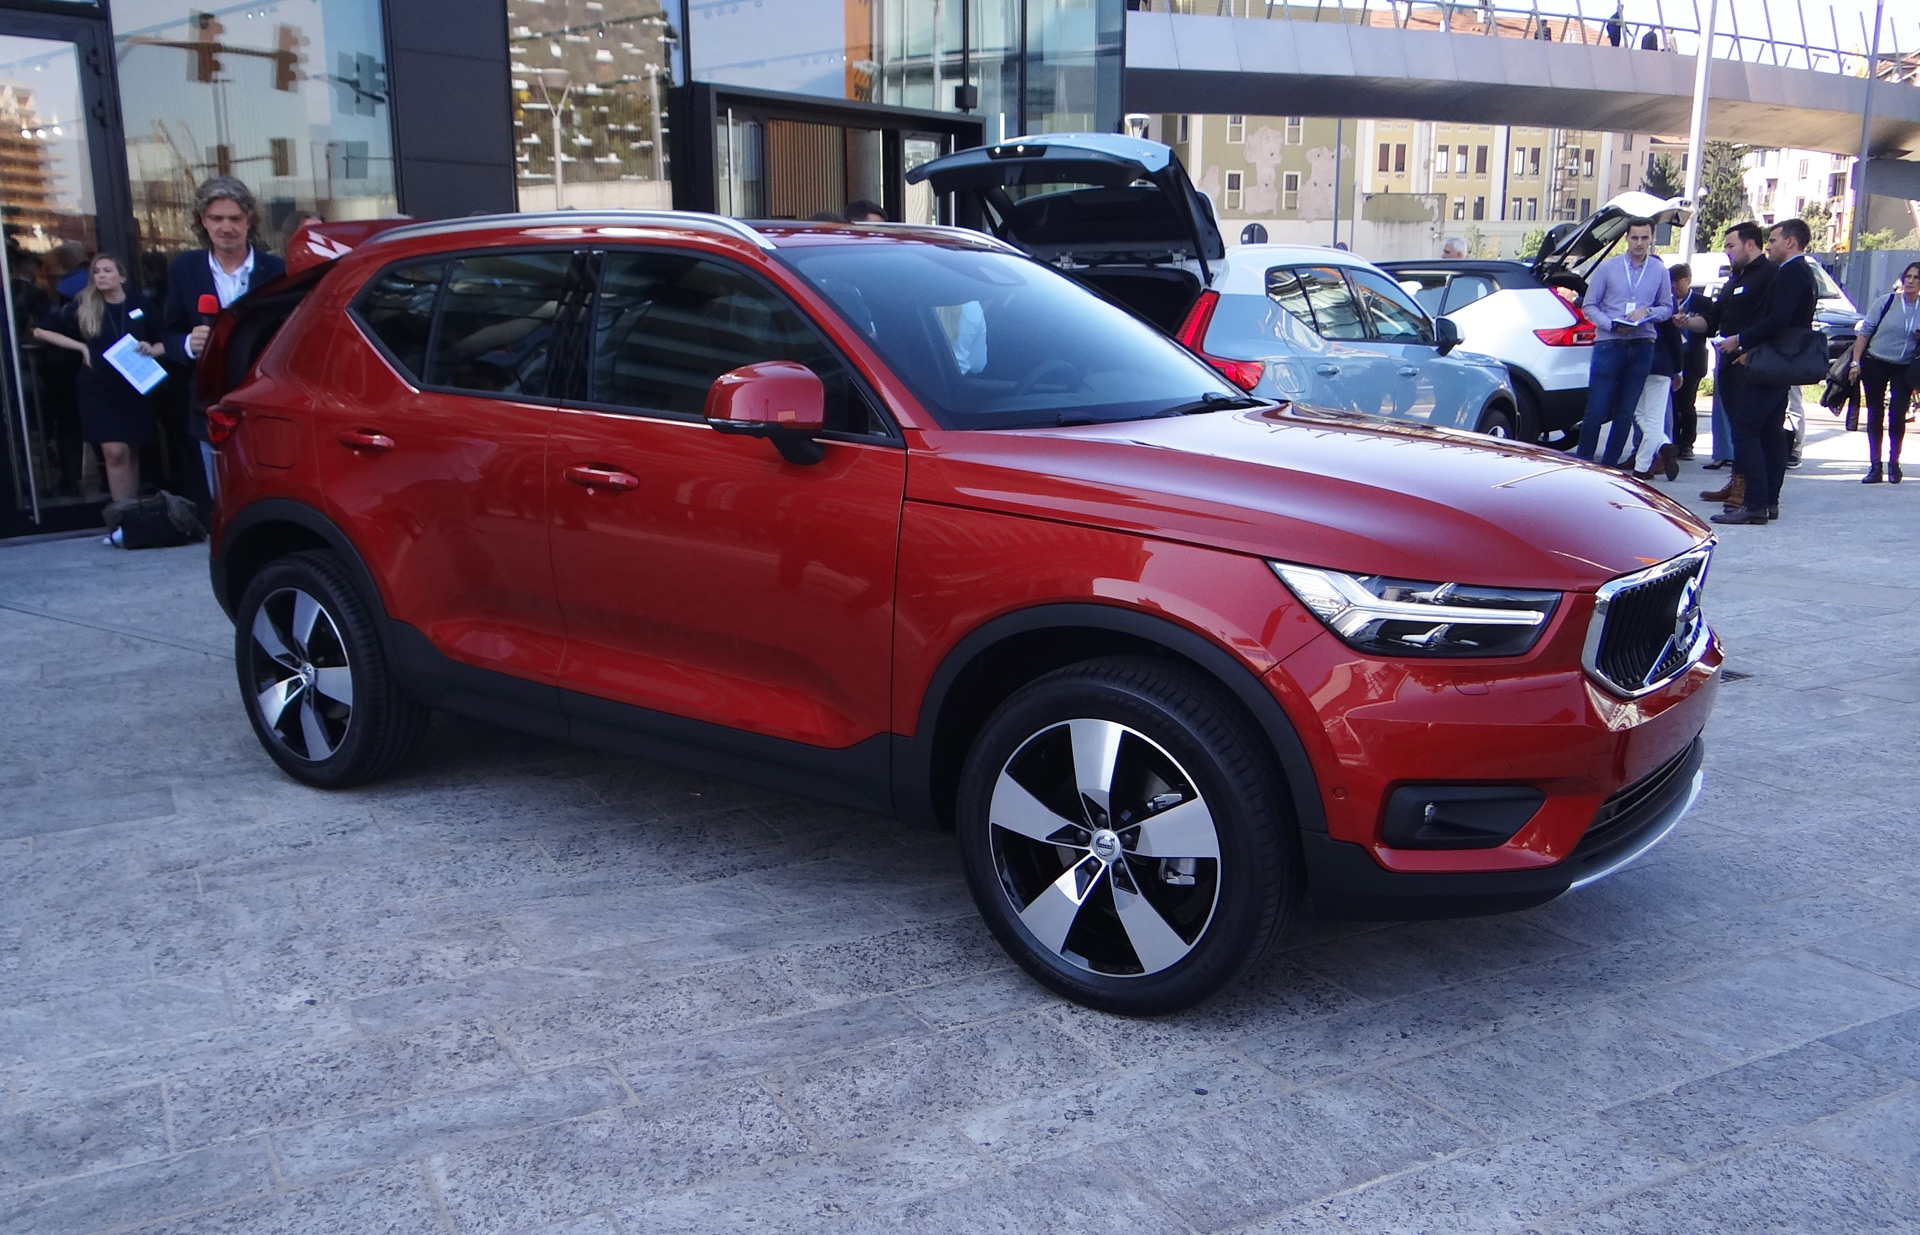 2019 volvo xc40 small suv to become brand 39 s first electric car. Black Bedroom Furniture Sets. Home Design Ideas